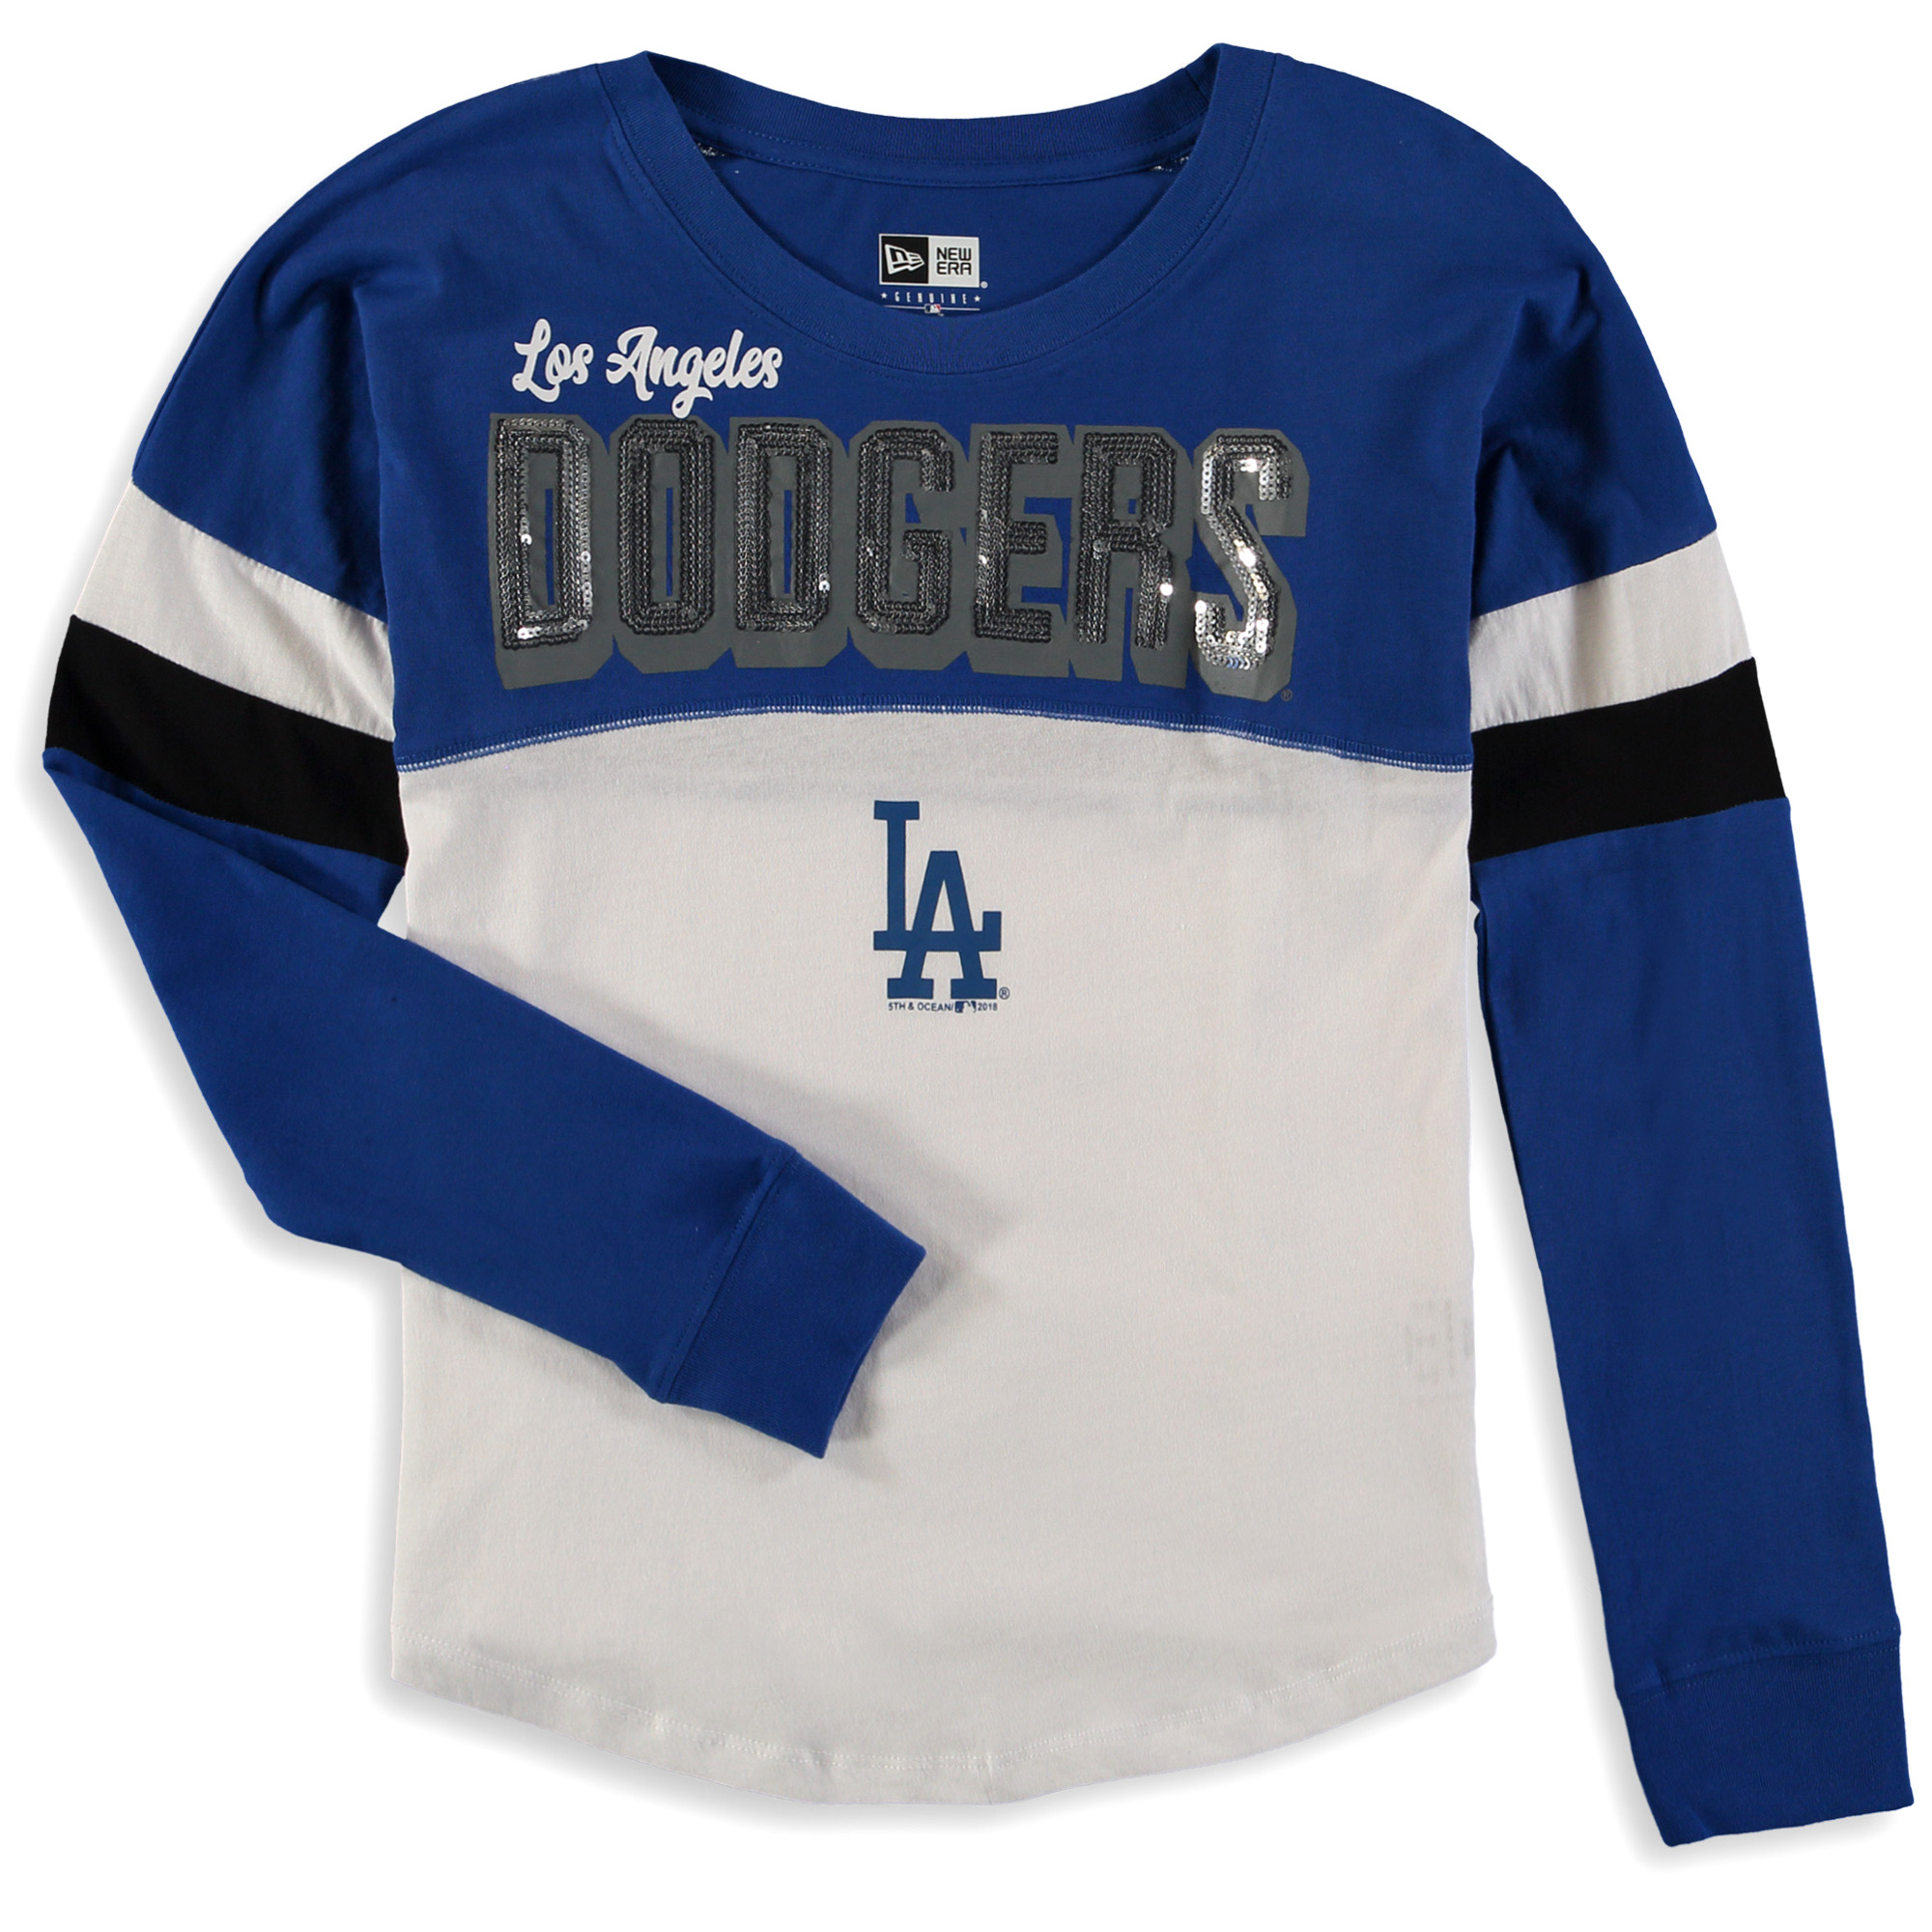 Los Angeles Dodgers 5th & Ocean by New Era Girls Youth Baby Jersey Long Sleeve T-Shirt - Royal/White